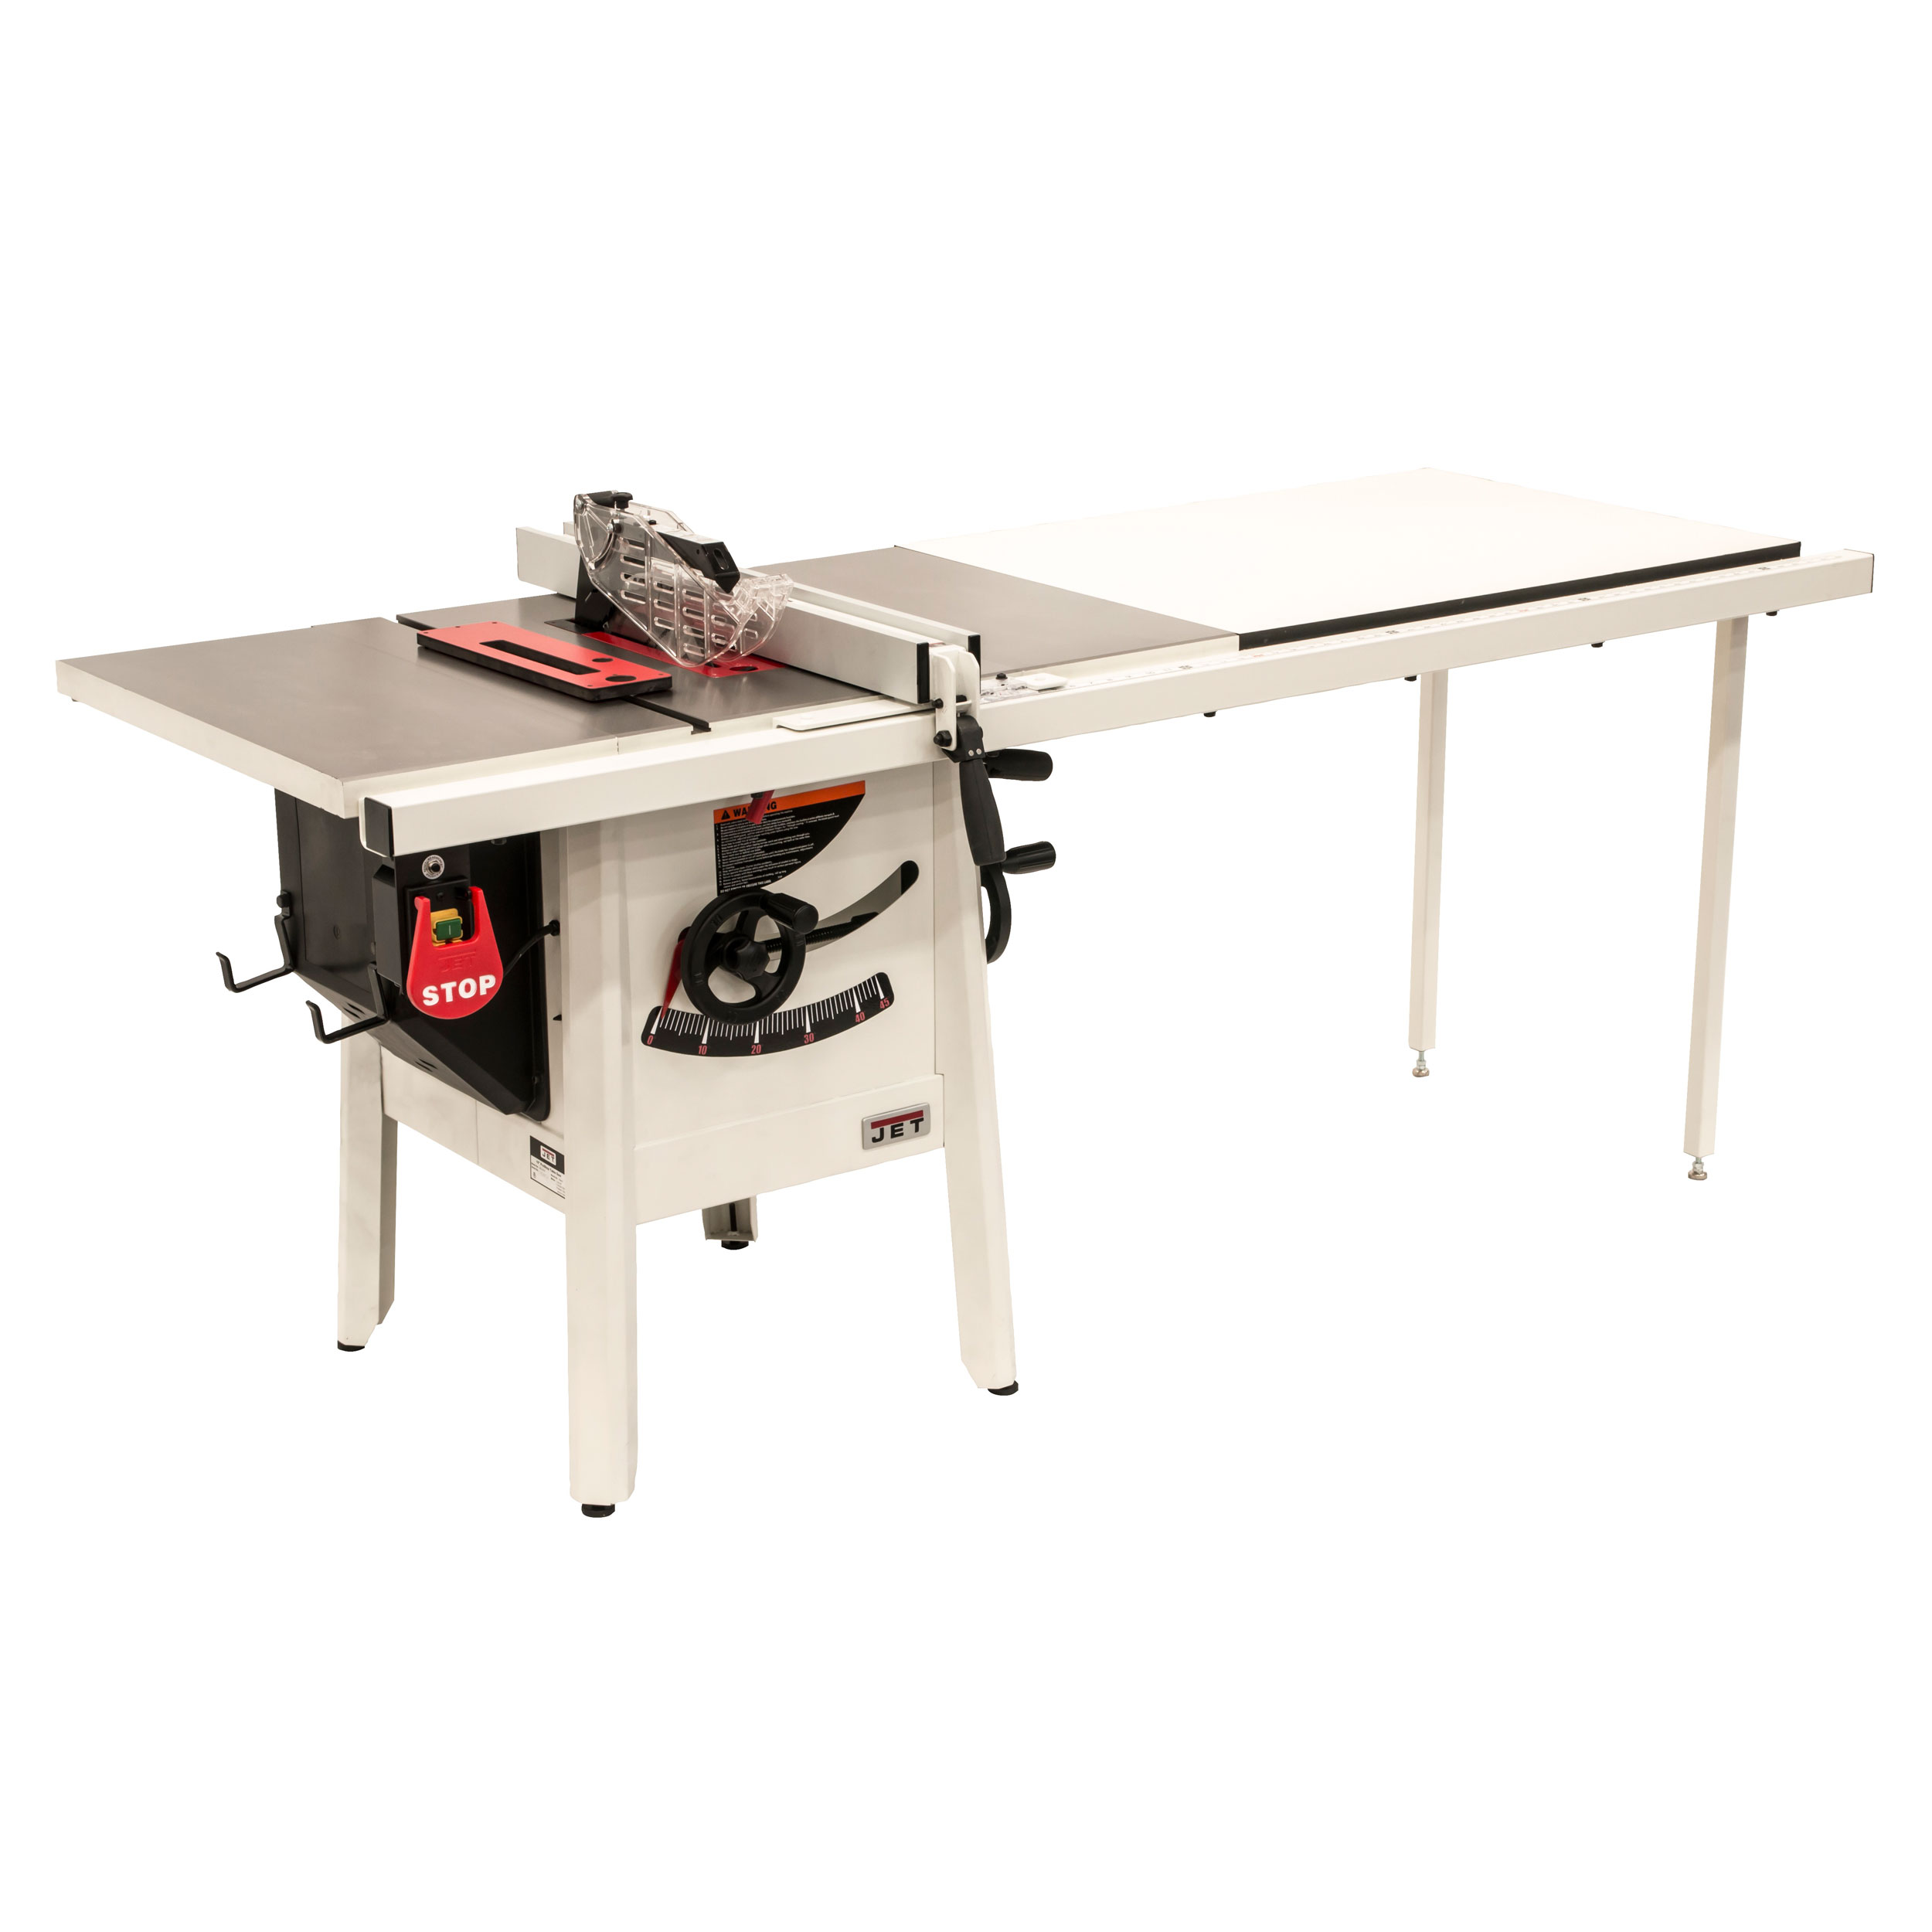 1-3/4HP 1PH 115V ProShop II Table Saw with Cast Wings and 52